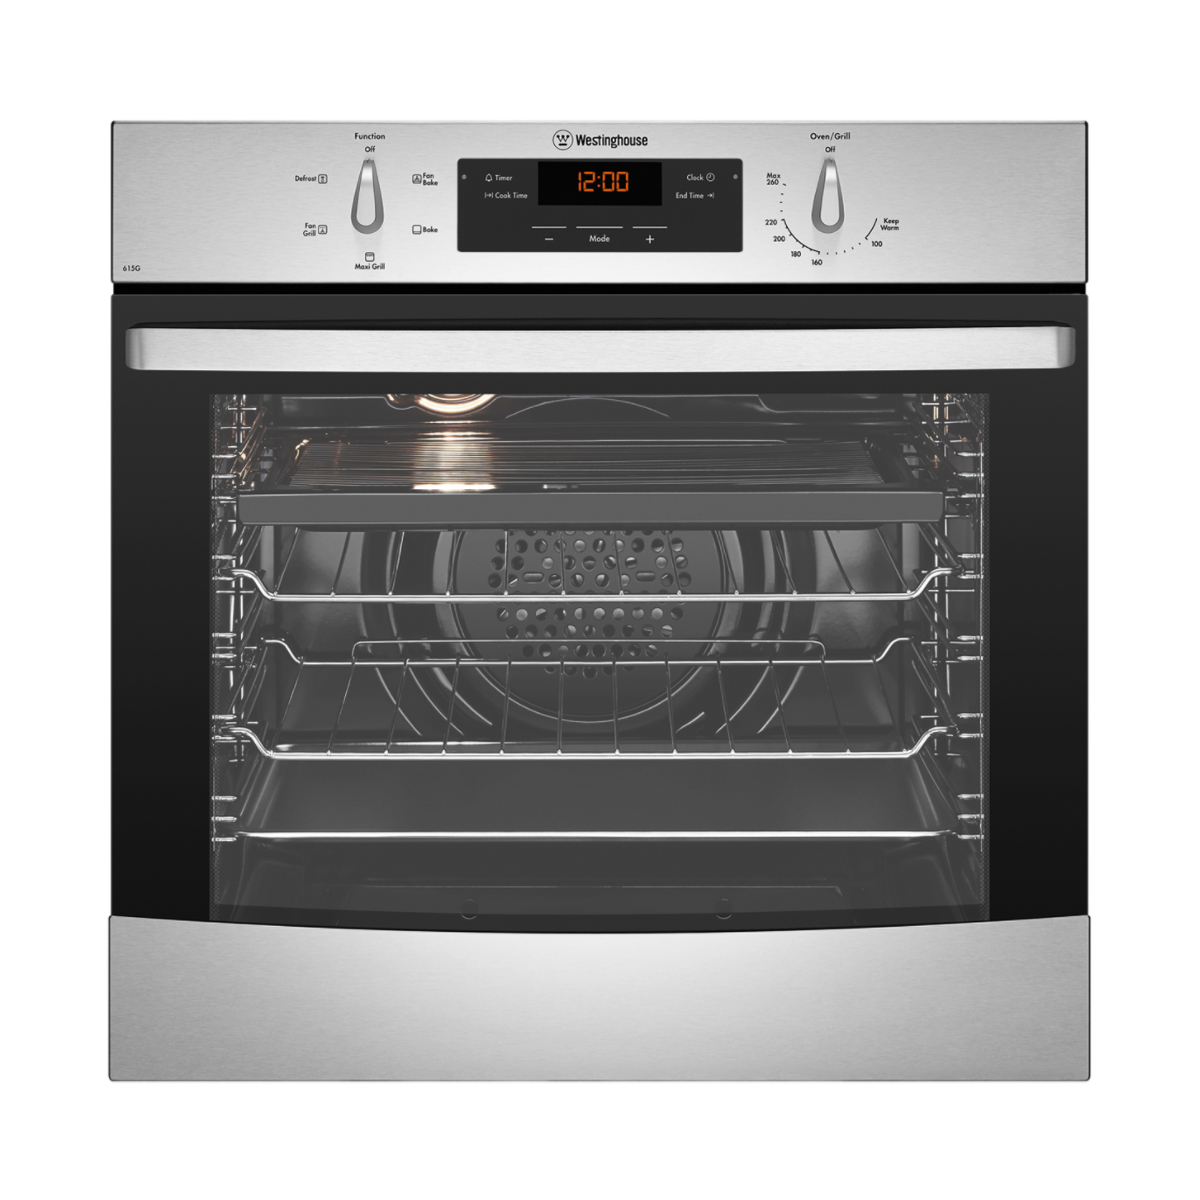 Westinghouse WVG615SLPG 60cm LPG Gas Built-In Oven